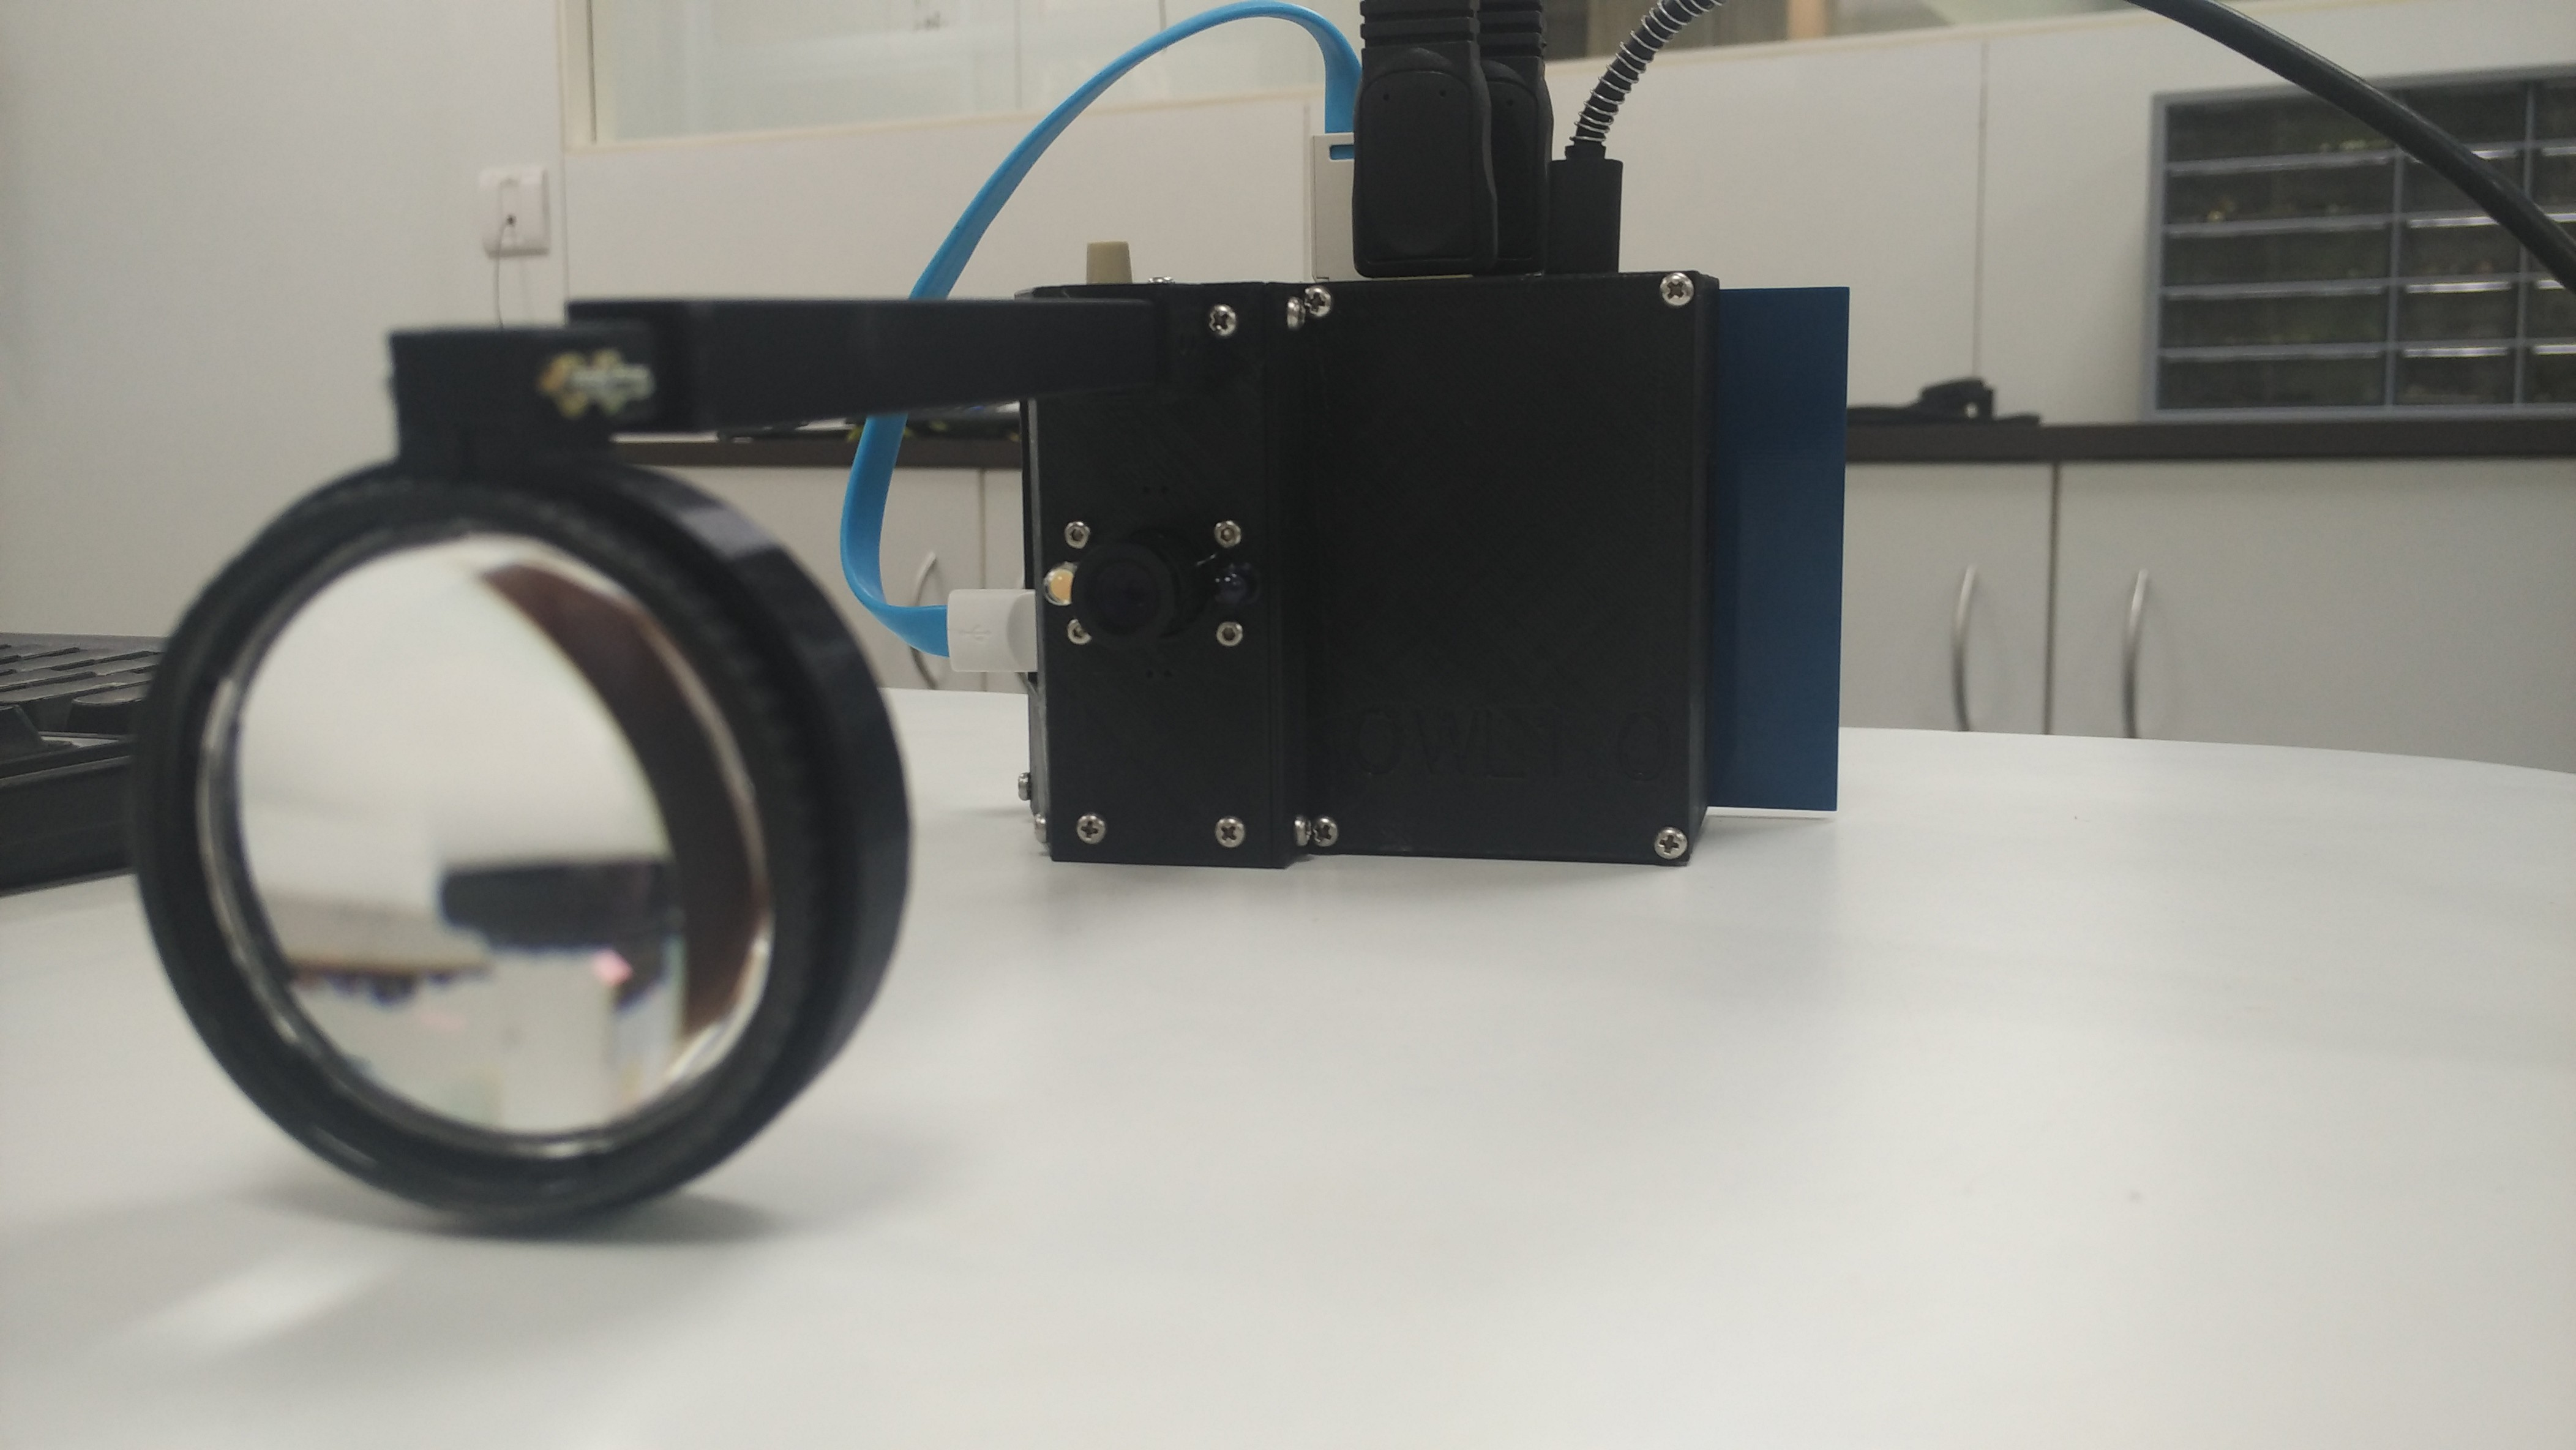 Starting out: Mimicking an indirect ophthalmoscope | Details